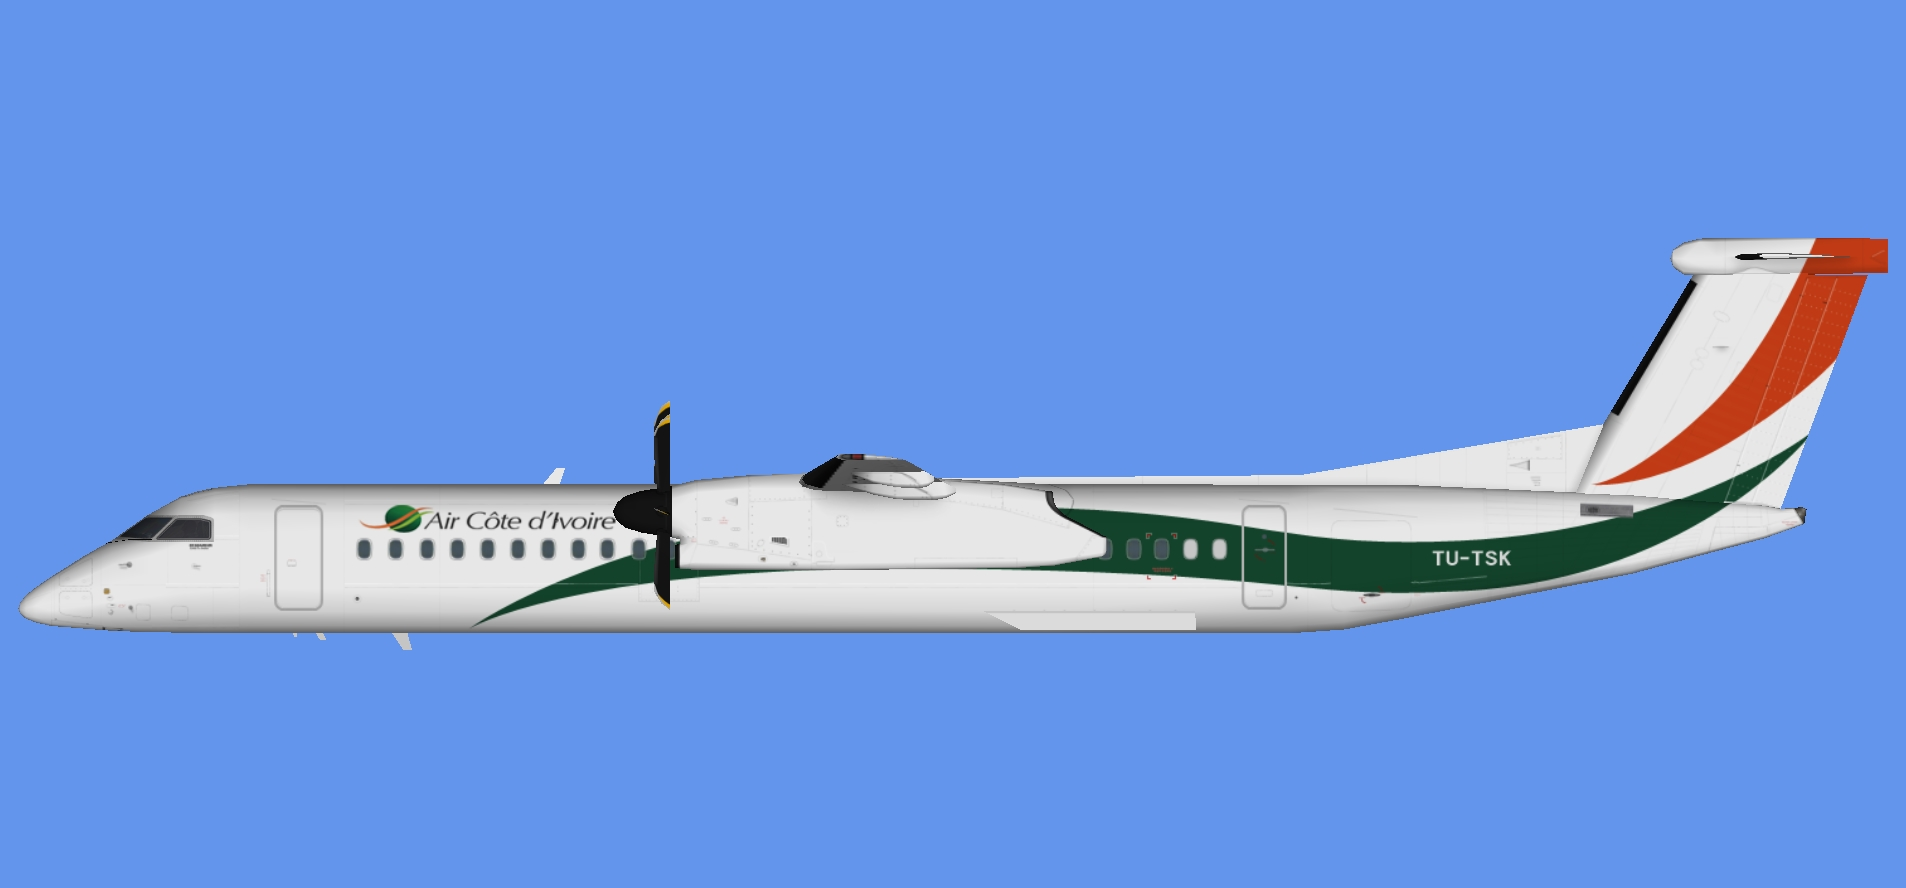 Air Cote d'Ivoire Dash 8-400